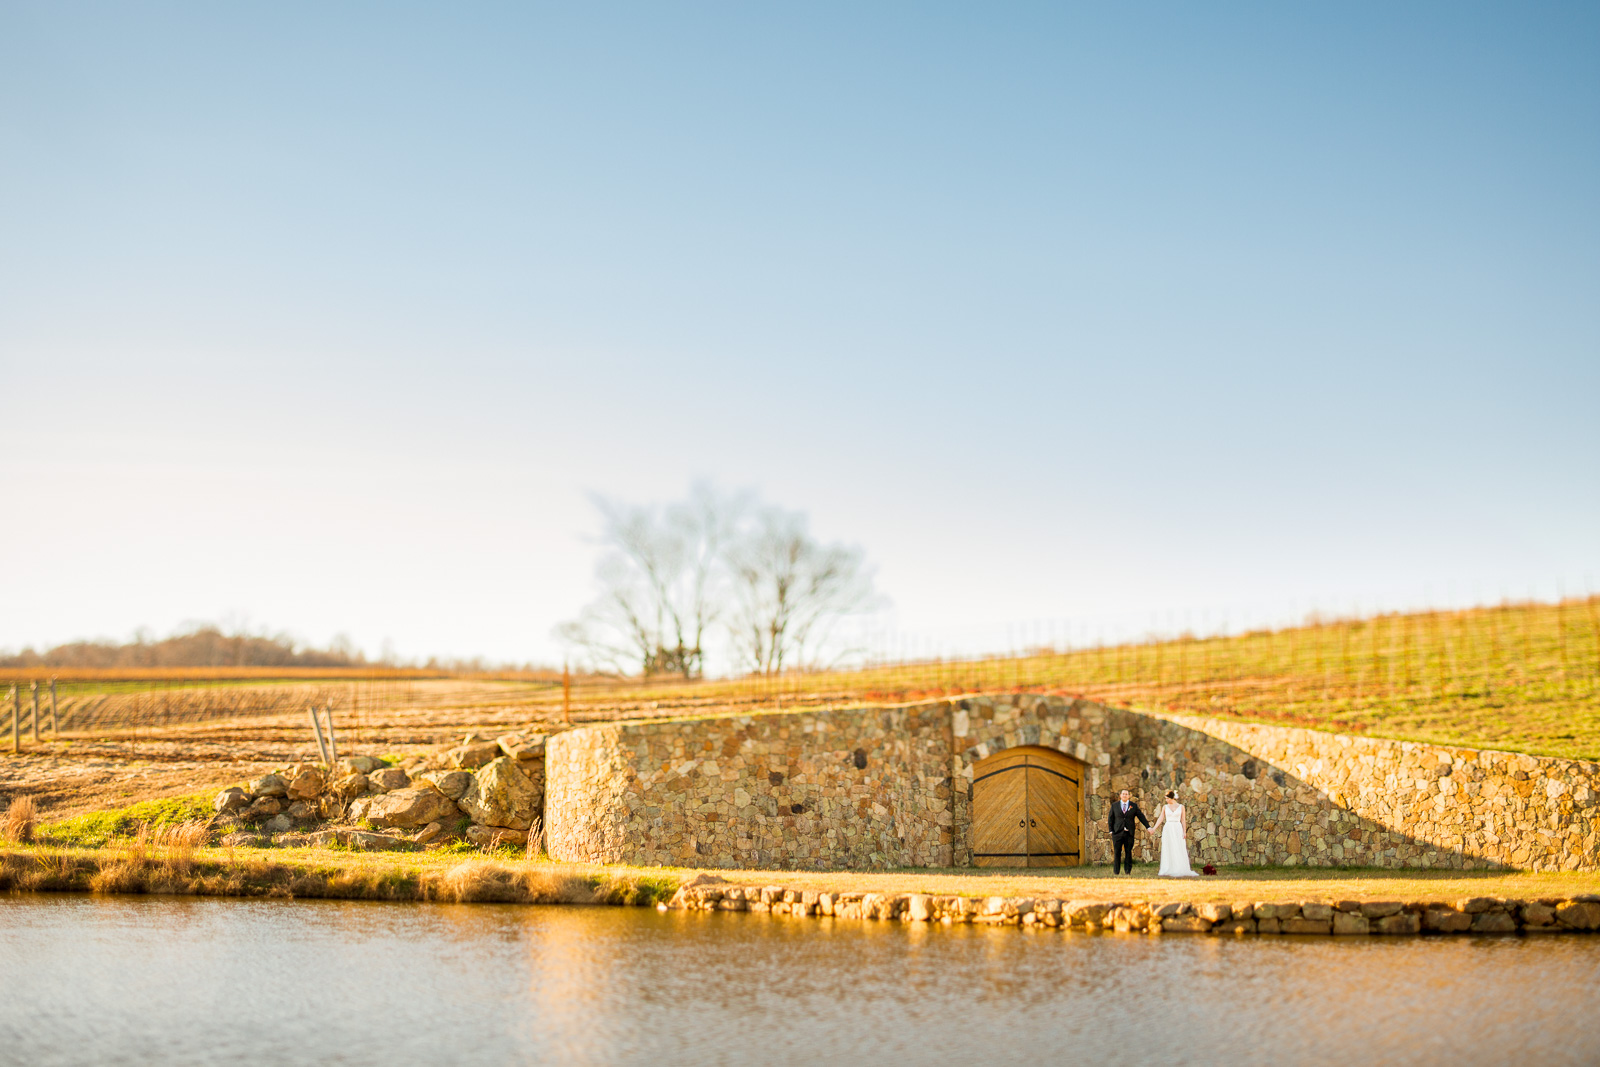 The wedding of Emily Bristol and Nick Pagano at Stone Tower Winery in Leesburg, Virginia November 21, 2015.©Lindsay King Photography/2015